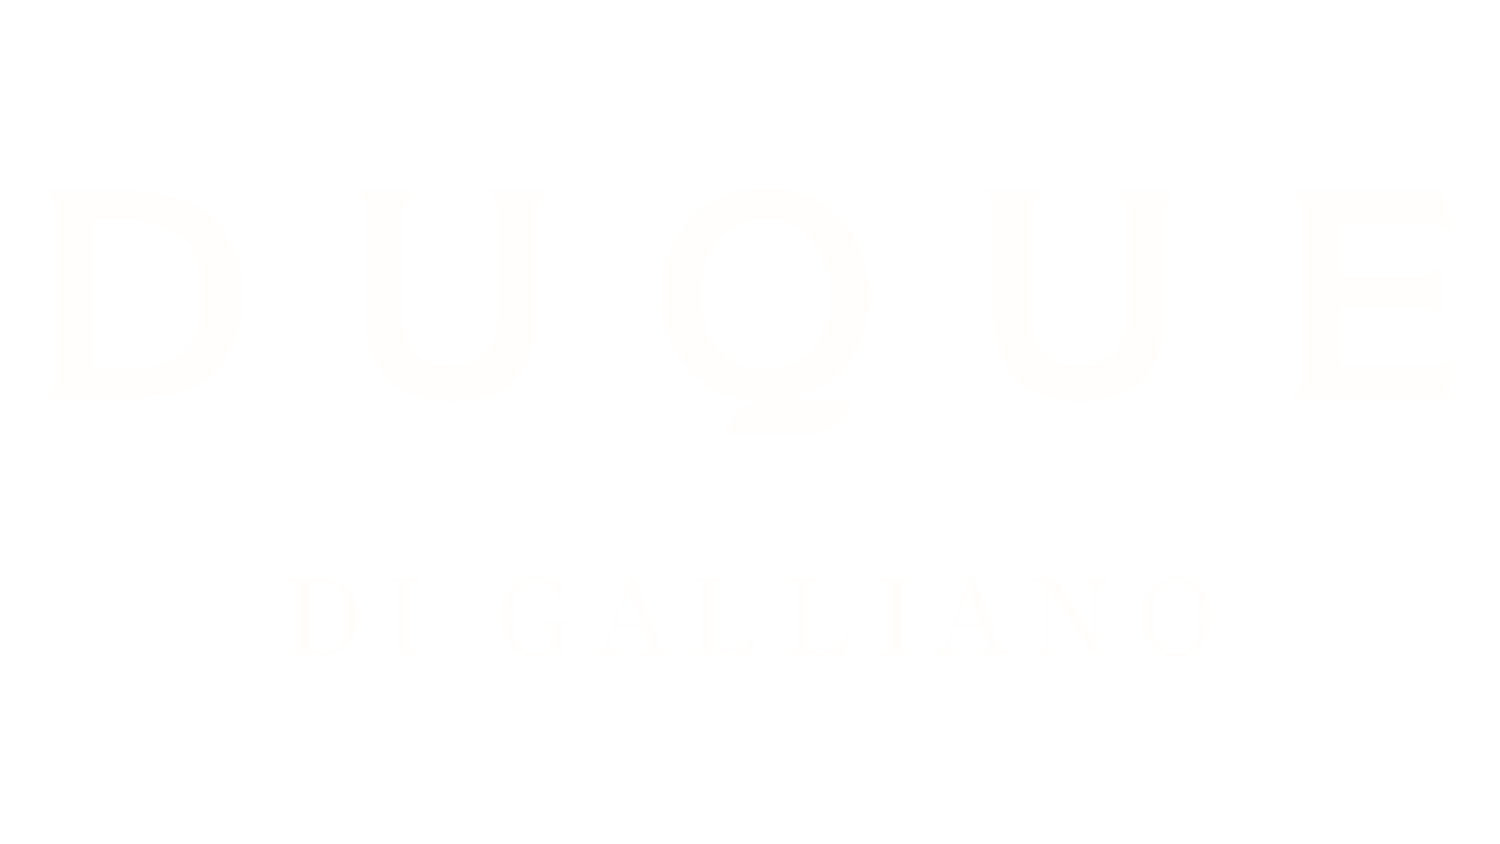 Duque Di Galliano